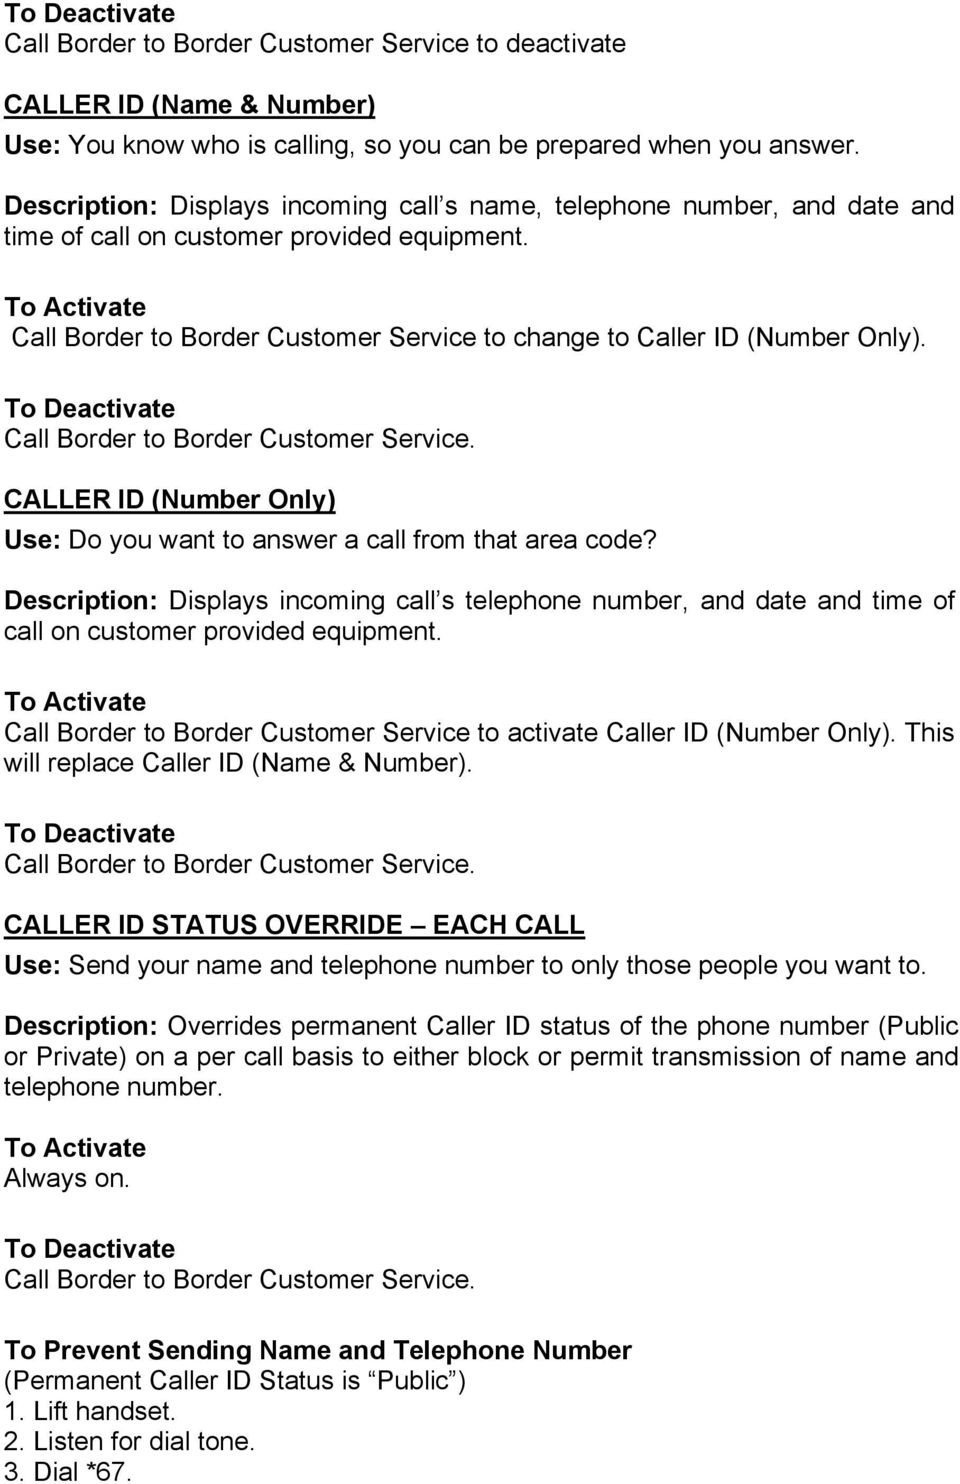 CALLER ID (Number Only) Use: Do you want to answer a call from that area code? Description: Displays incoming call s telephone number, and date and time of call on customer provided equipment.